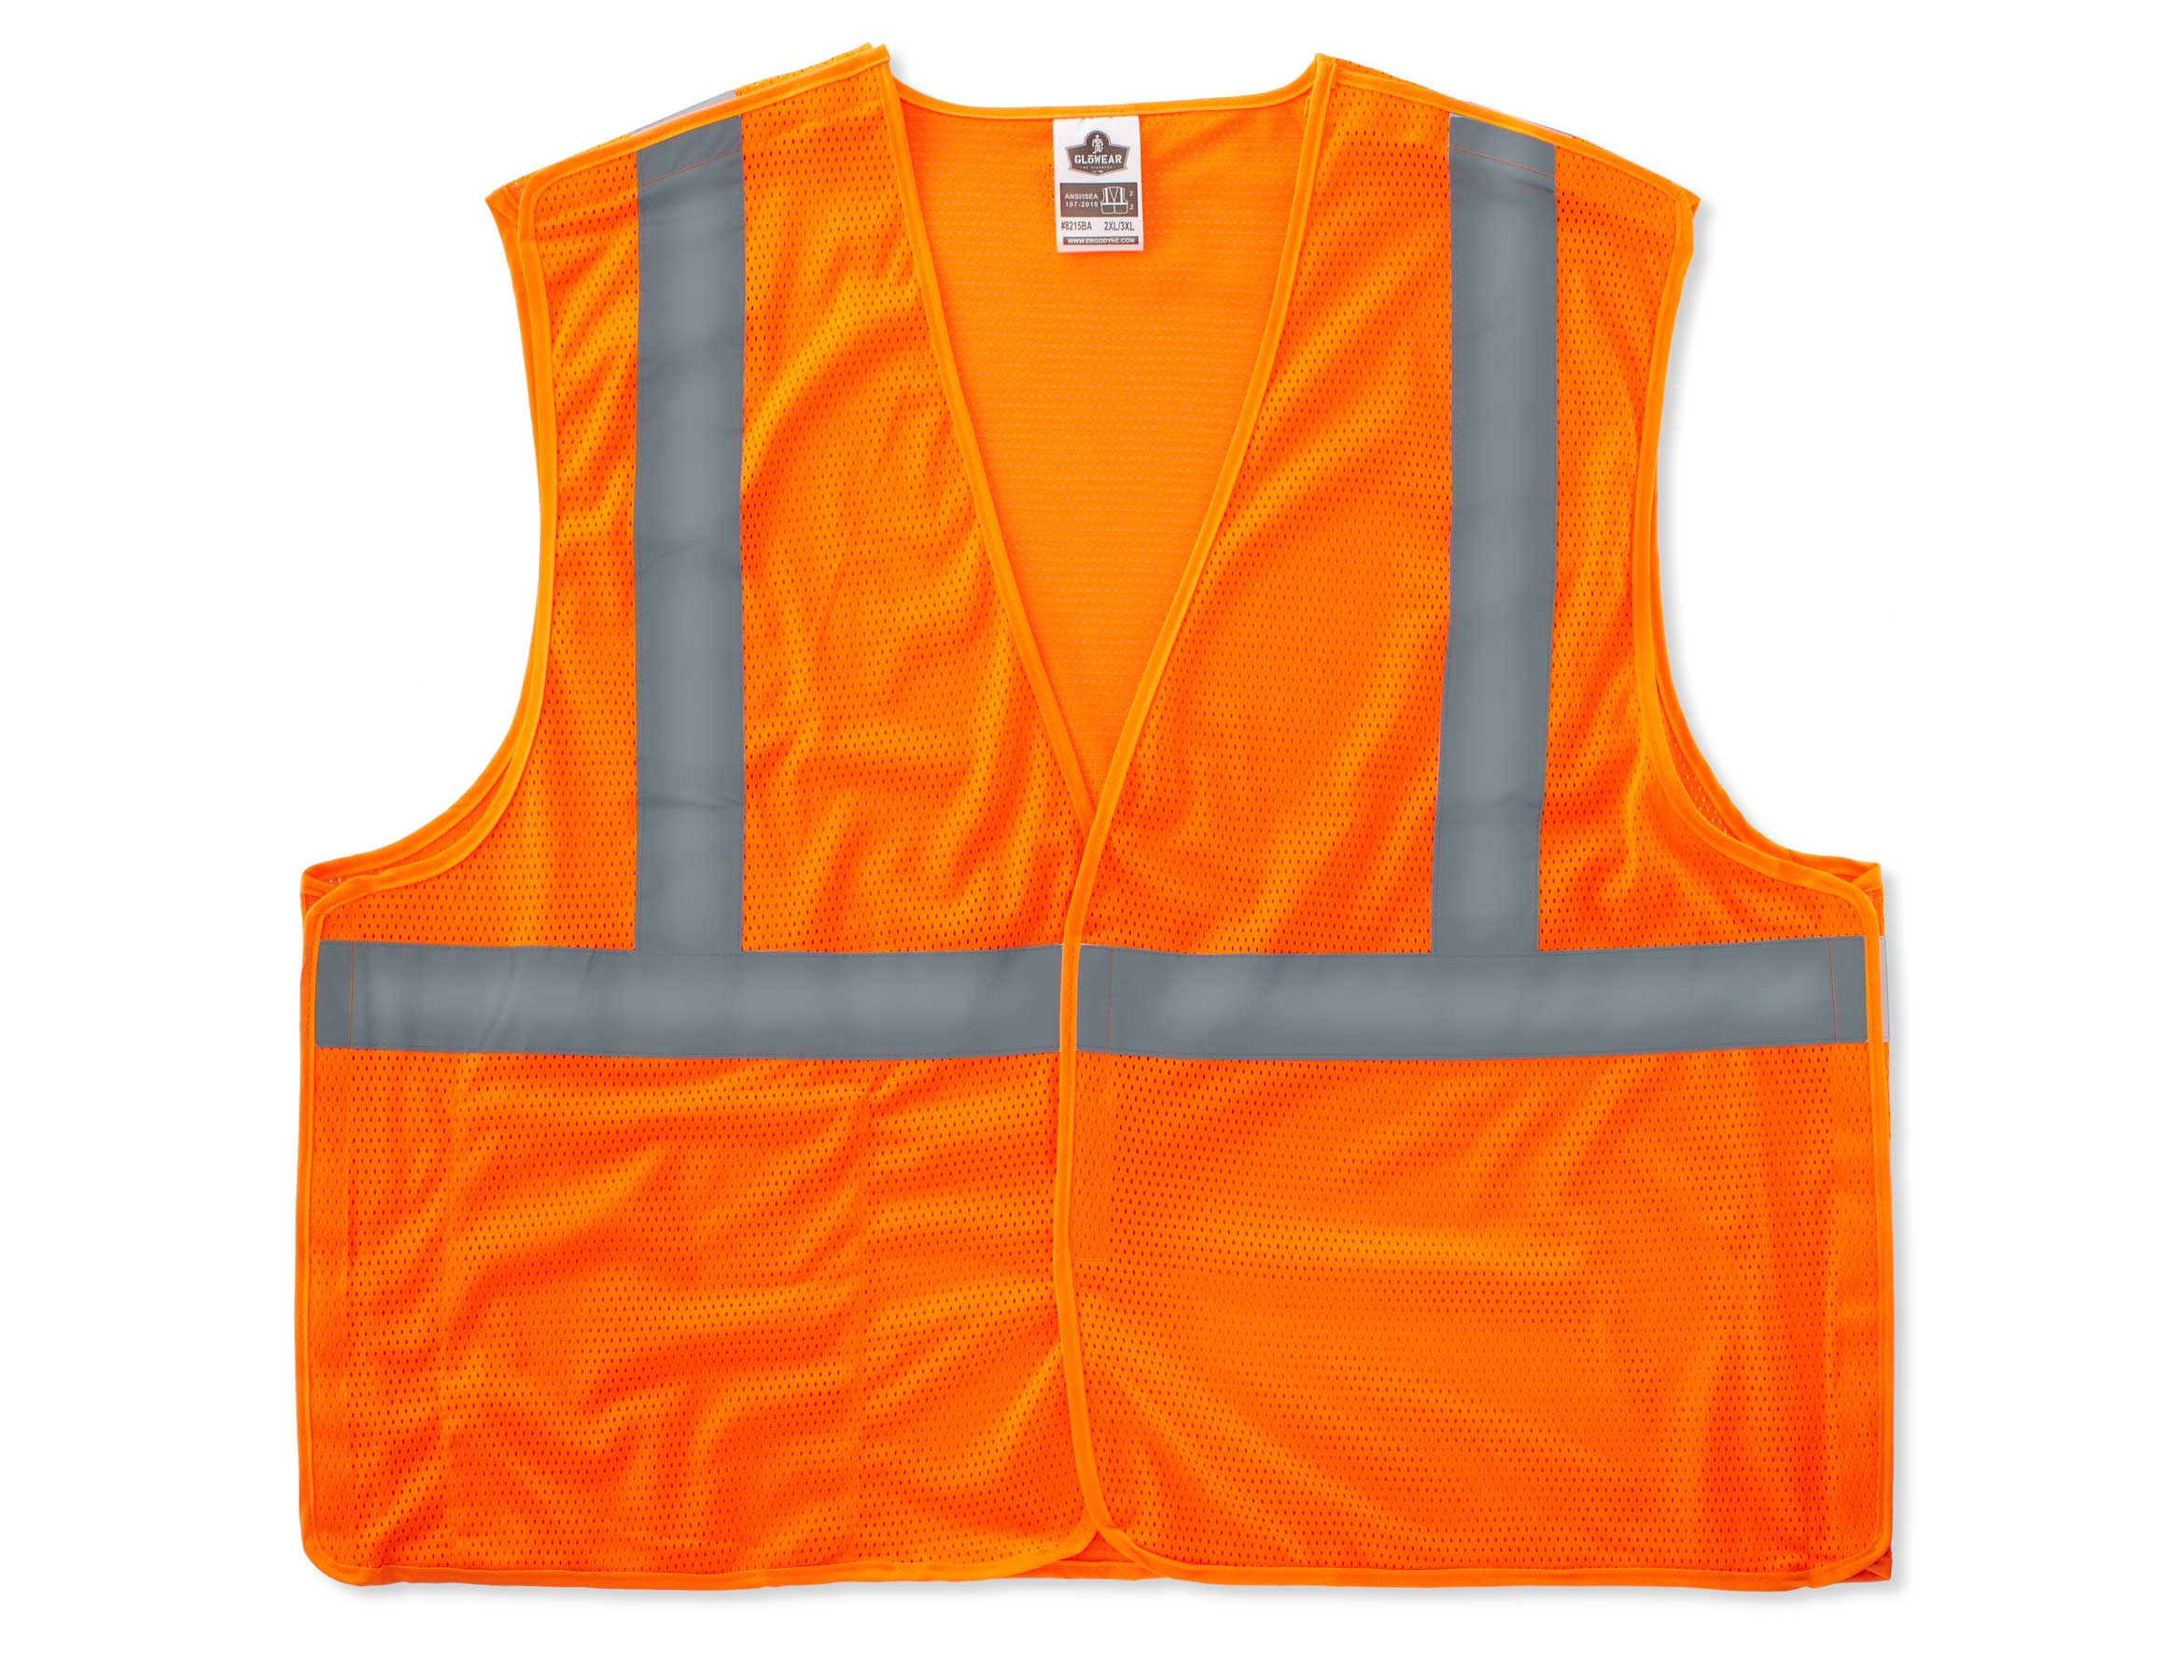 Ergodyne Breakway Vest- Class 2, Orange, 4XL/5XL